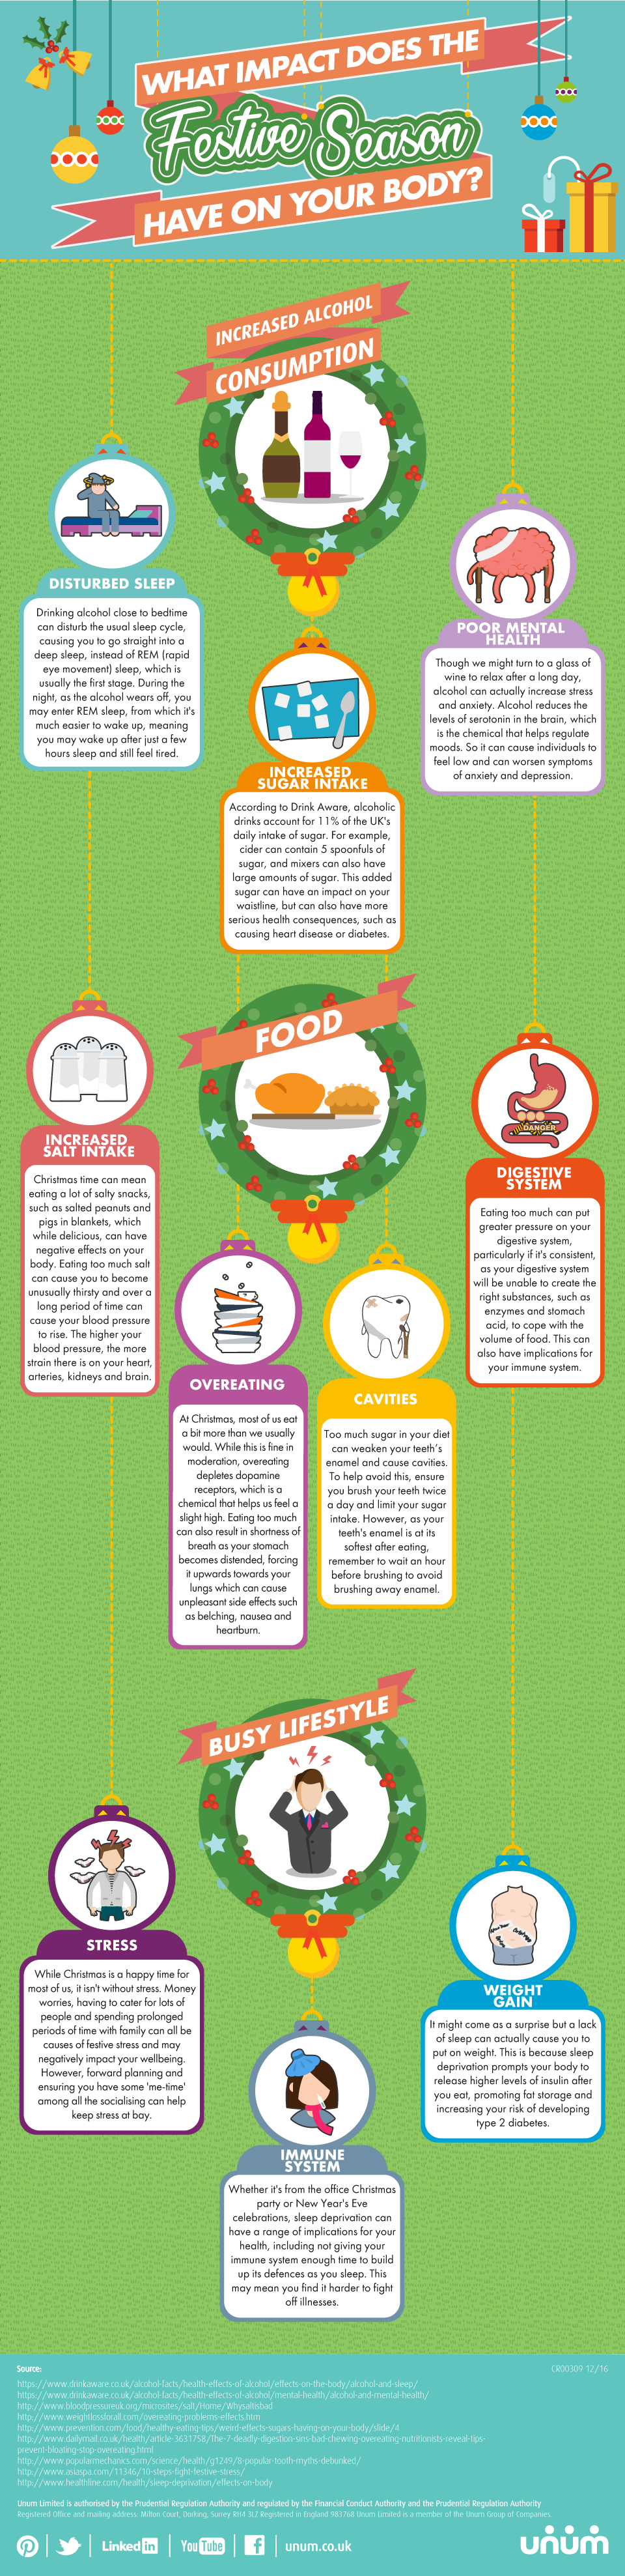 Are Festivals Injurious To Your Health? - Infographic